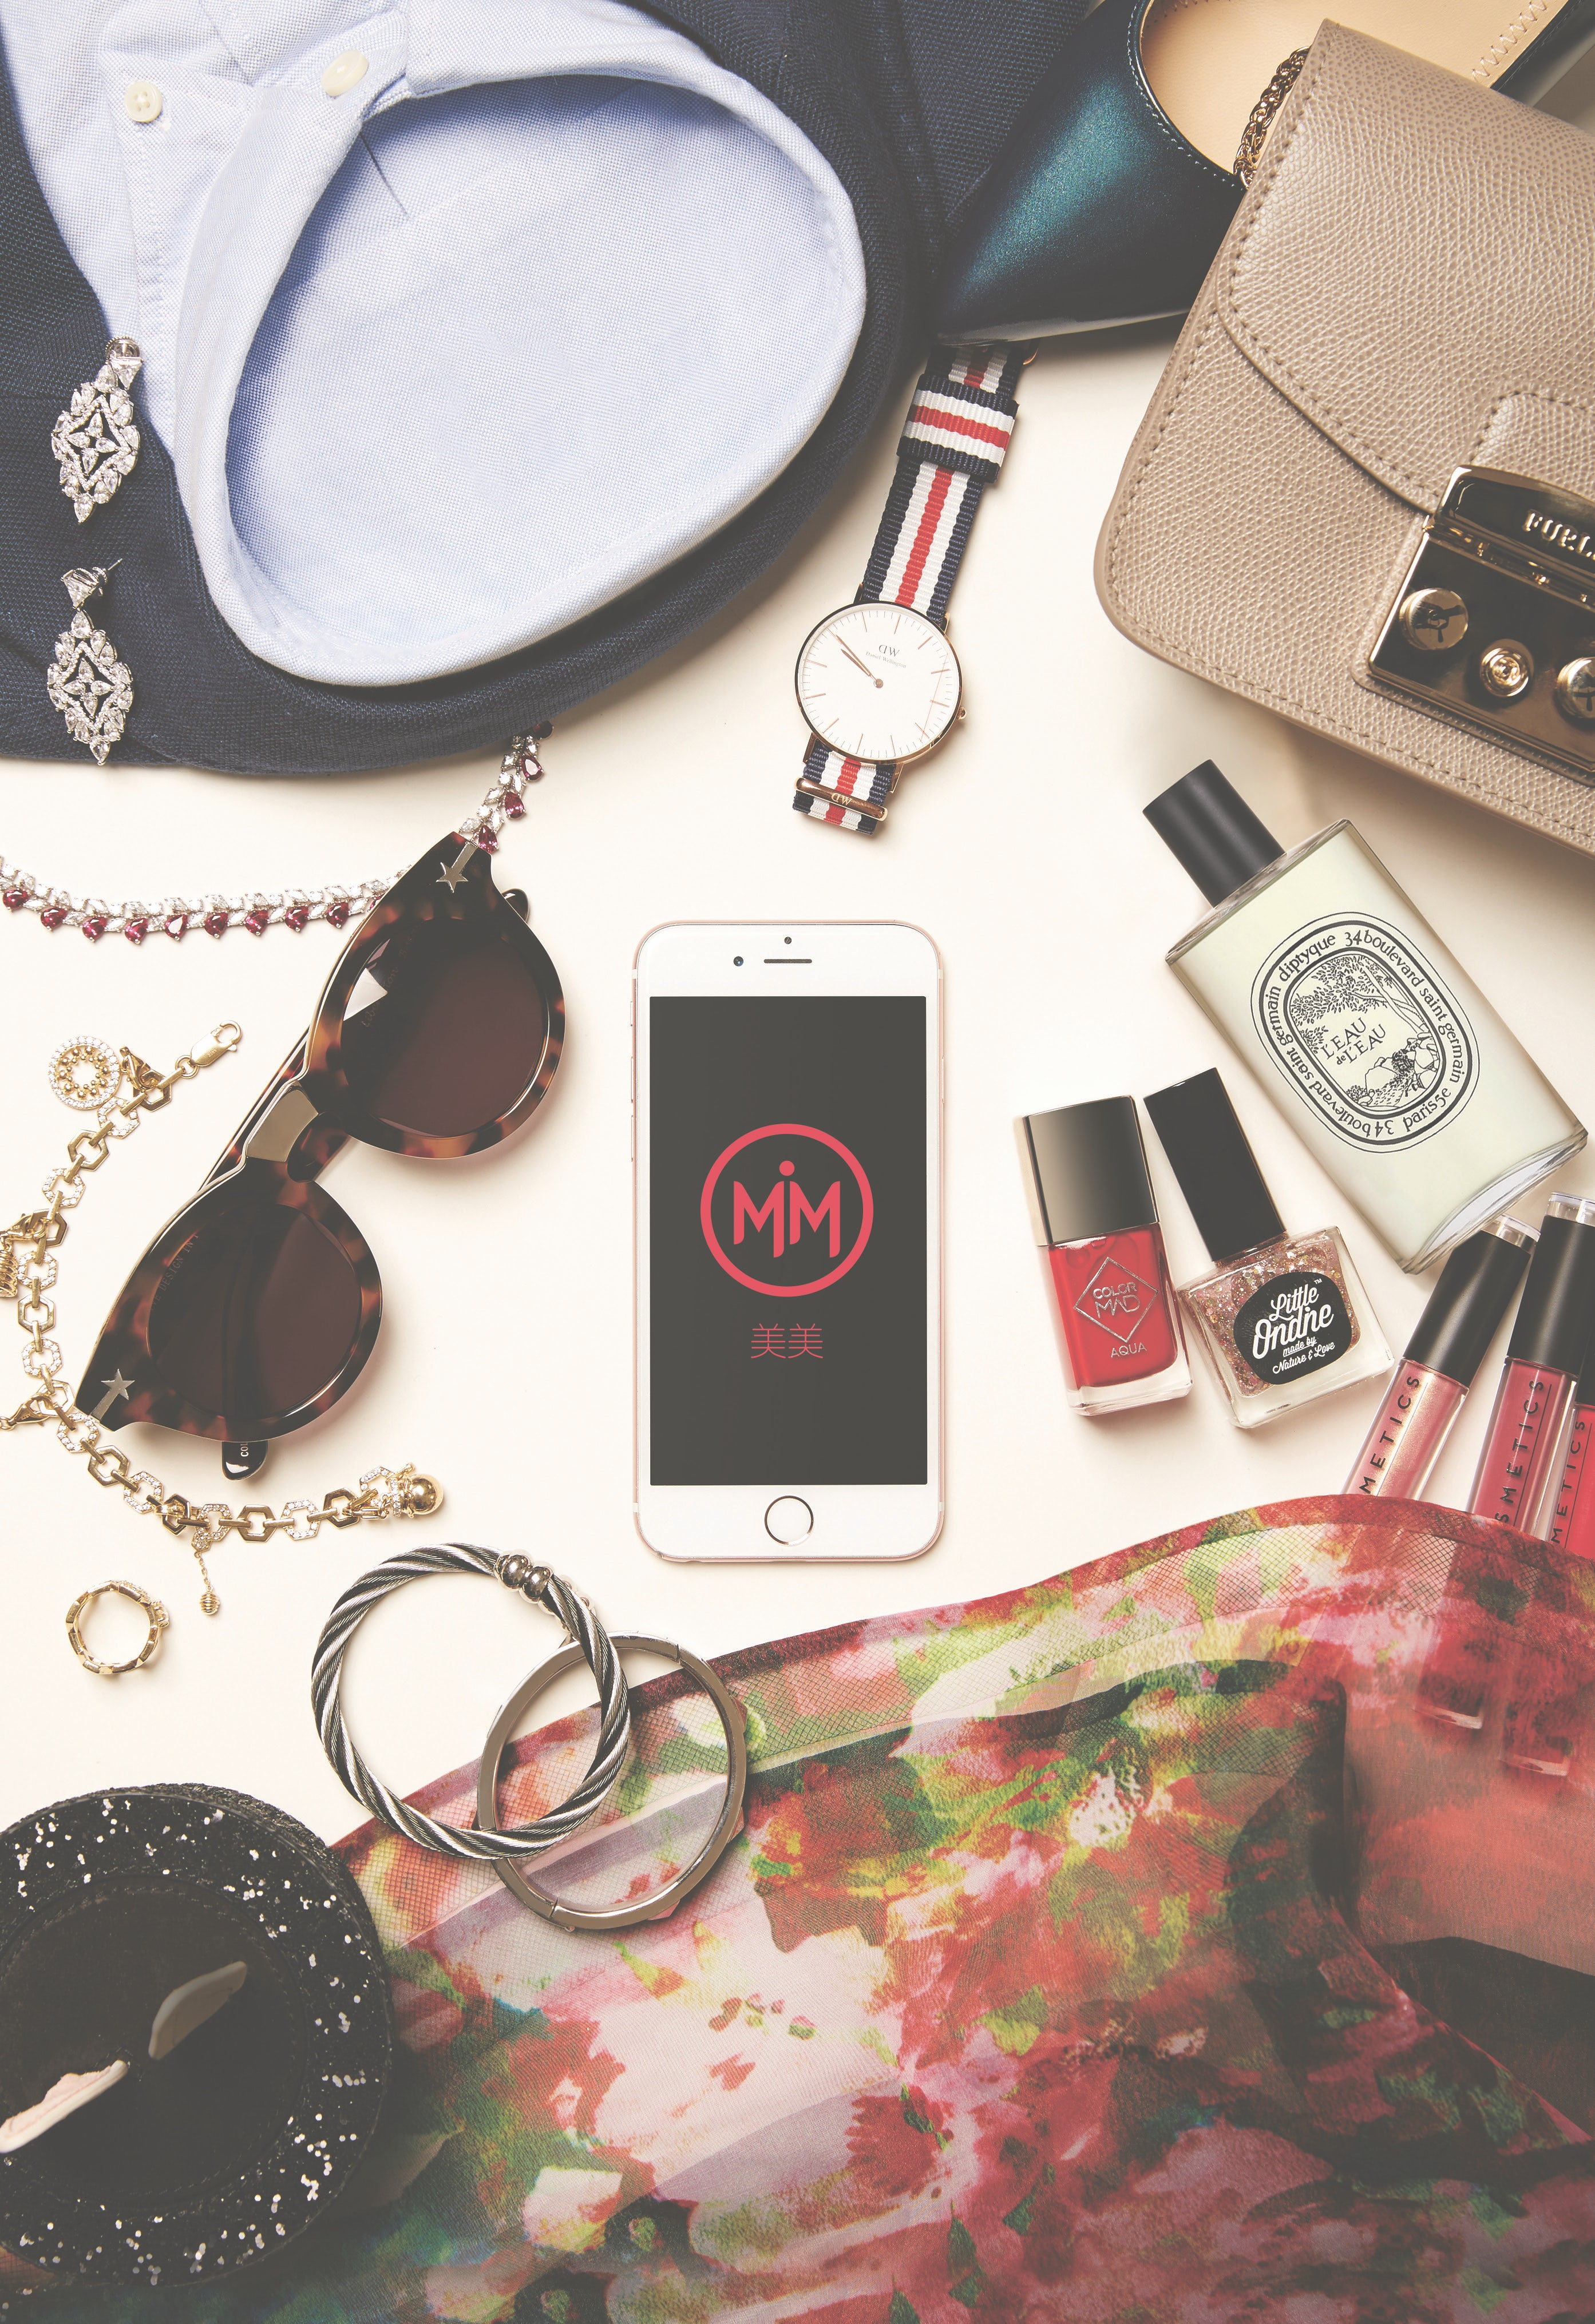 The Fashion App Transforming Social Mobile Commerce in China